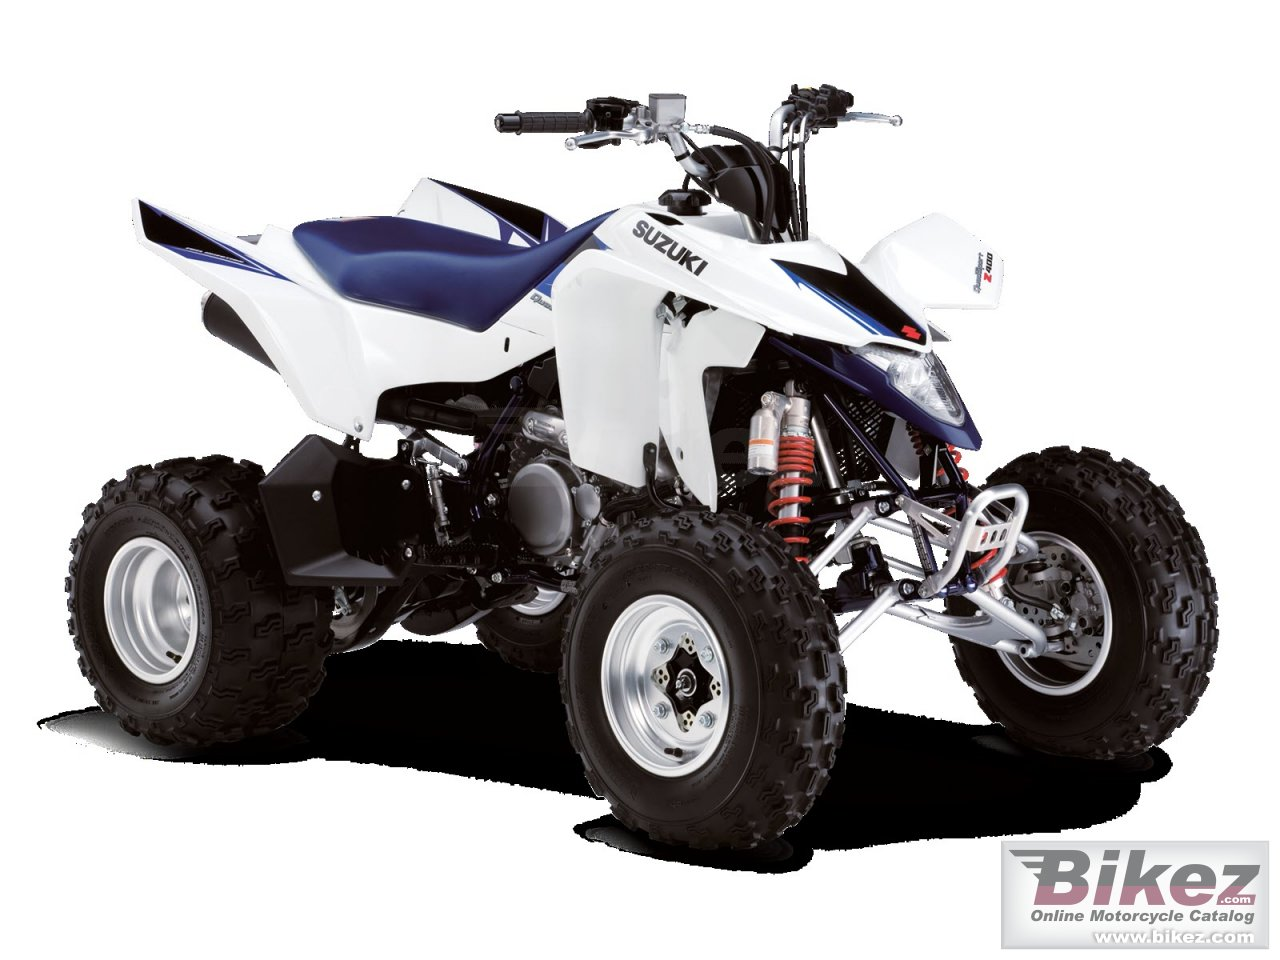 Big Suzuki quadsport z400 picture and wallpaper from Bikez.com